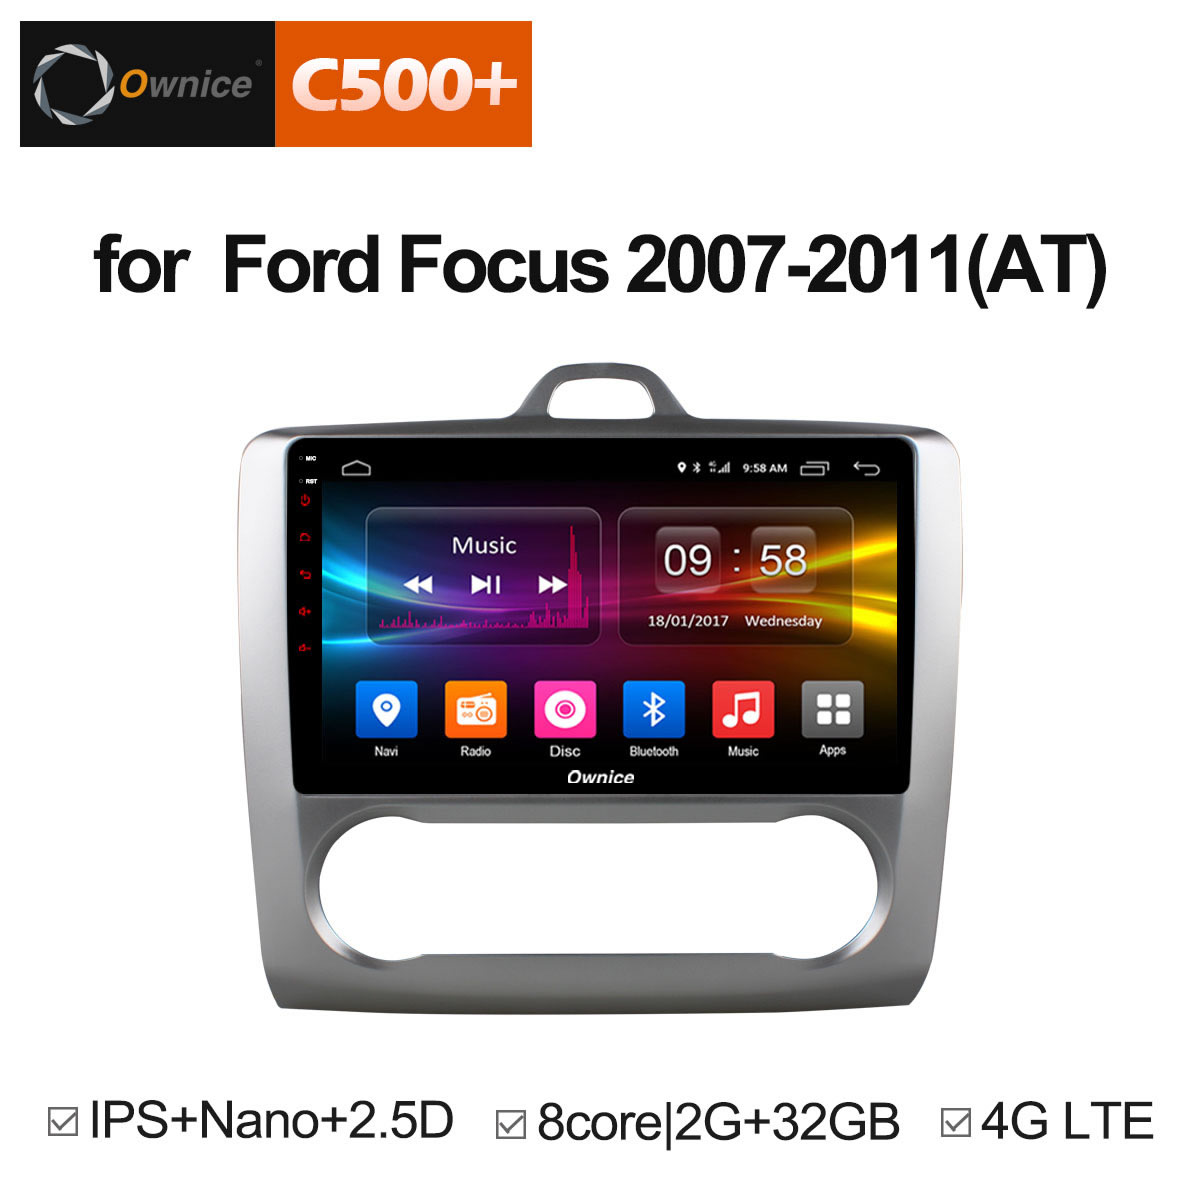 Ownice C500+ G10 Octa Core Android 8.1 Car Radio DVD player GPS Navi 2G/32G Support 4G For Ford Focus 2007 2008 2009 2010 2011 10 1 ownice c500 g10 octa 8 core android 8 1 car dvd gps player for toyota tundra 2007 2013 sequoia 2008 2018 stereo radio